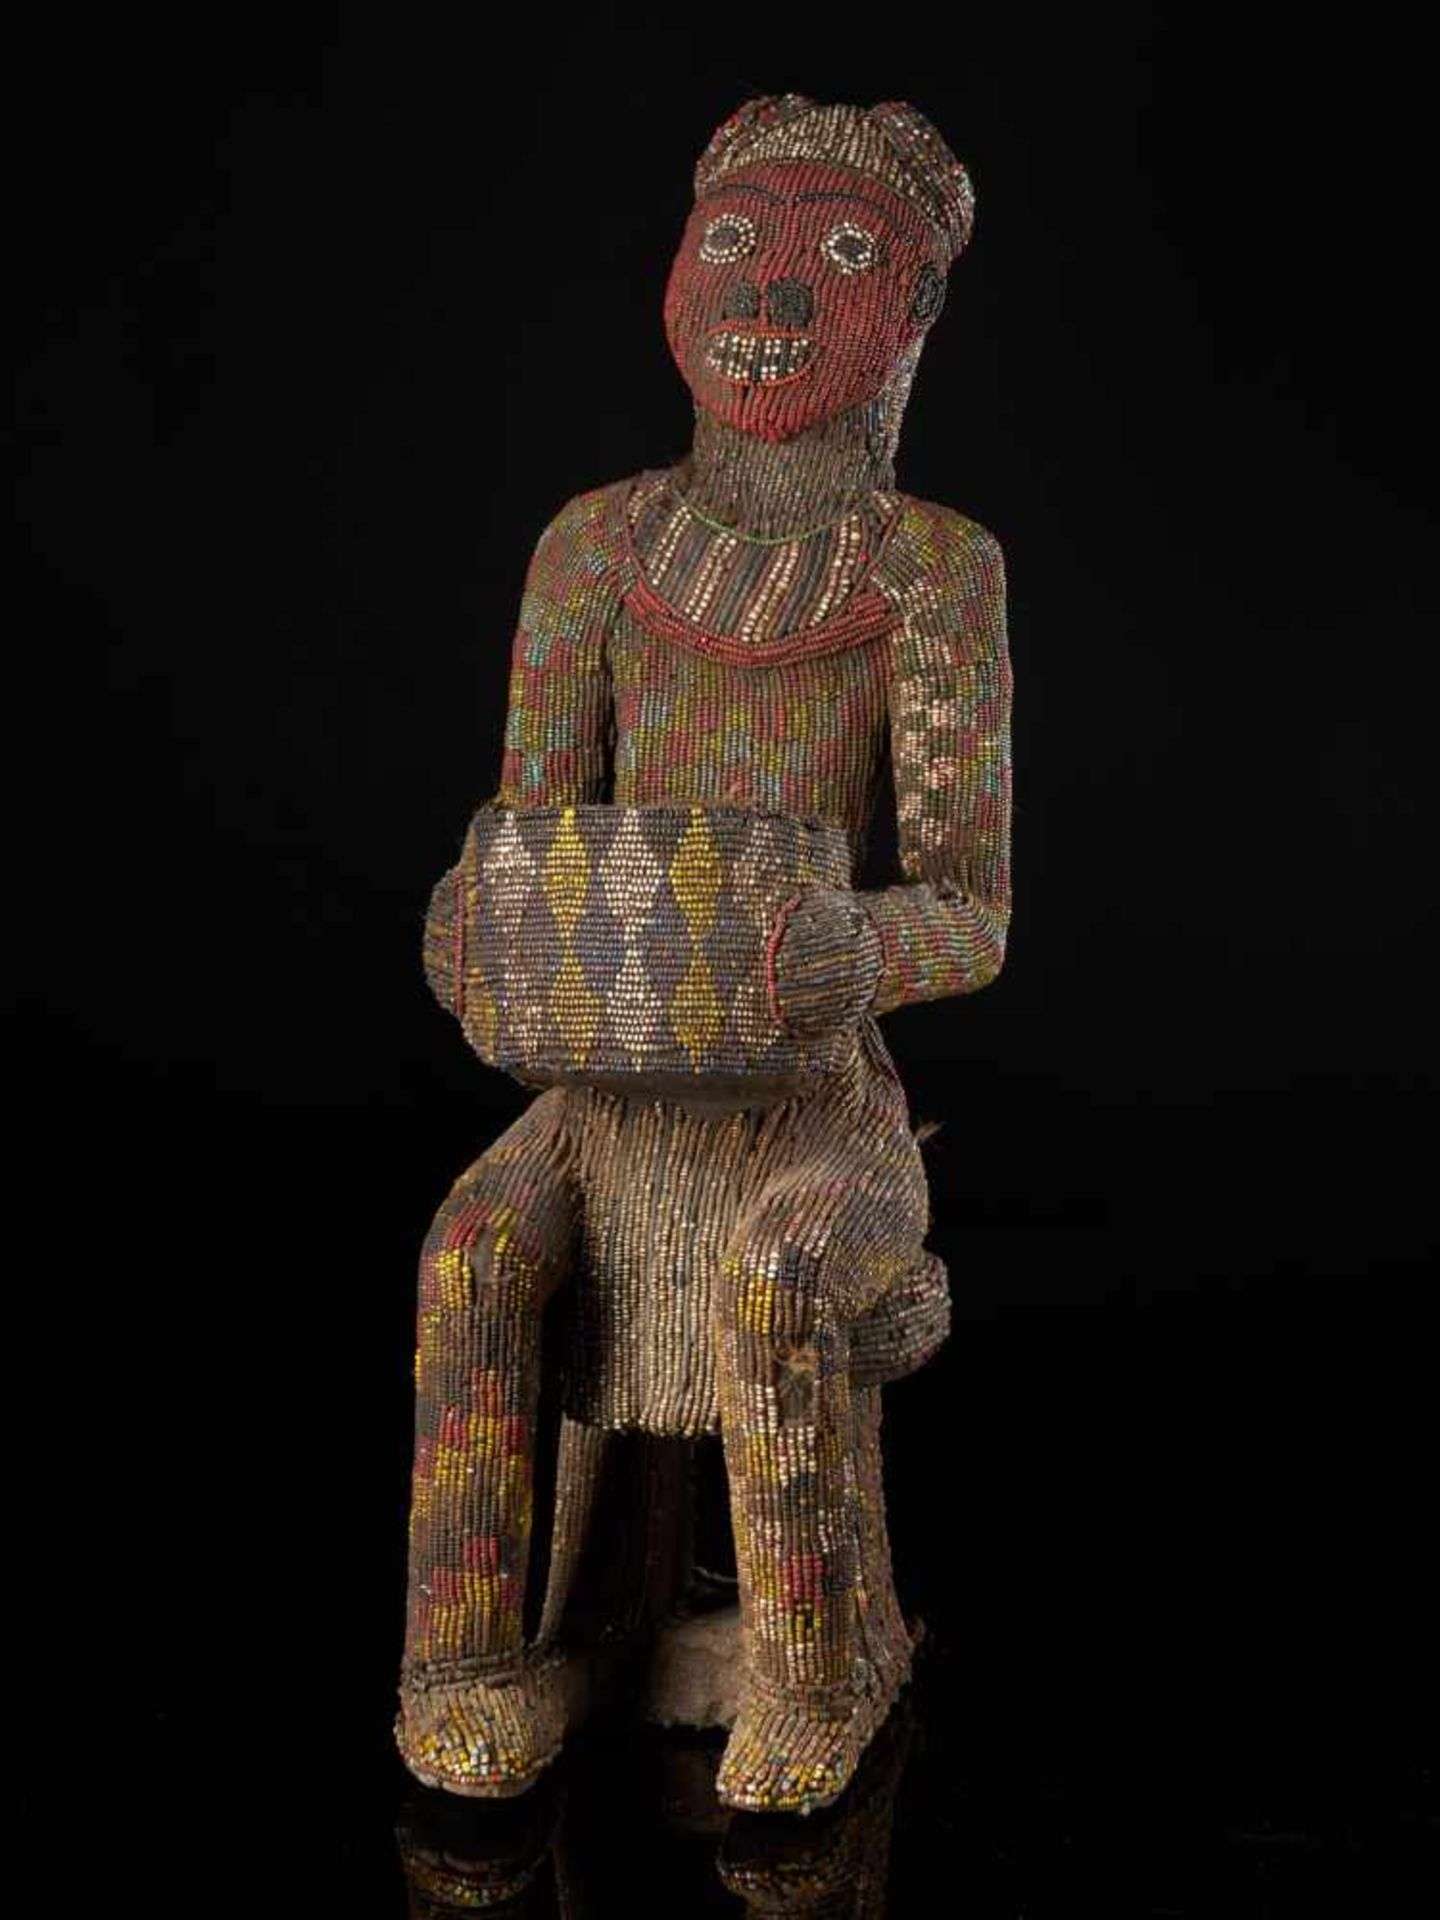 Beaded Figure Of Cupholder - Tribal ArtA beaded figure of a man sitting on a stool, holding a cup.